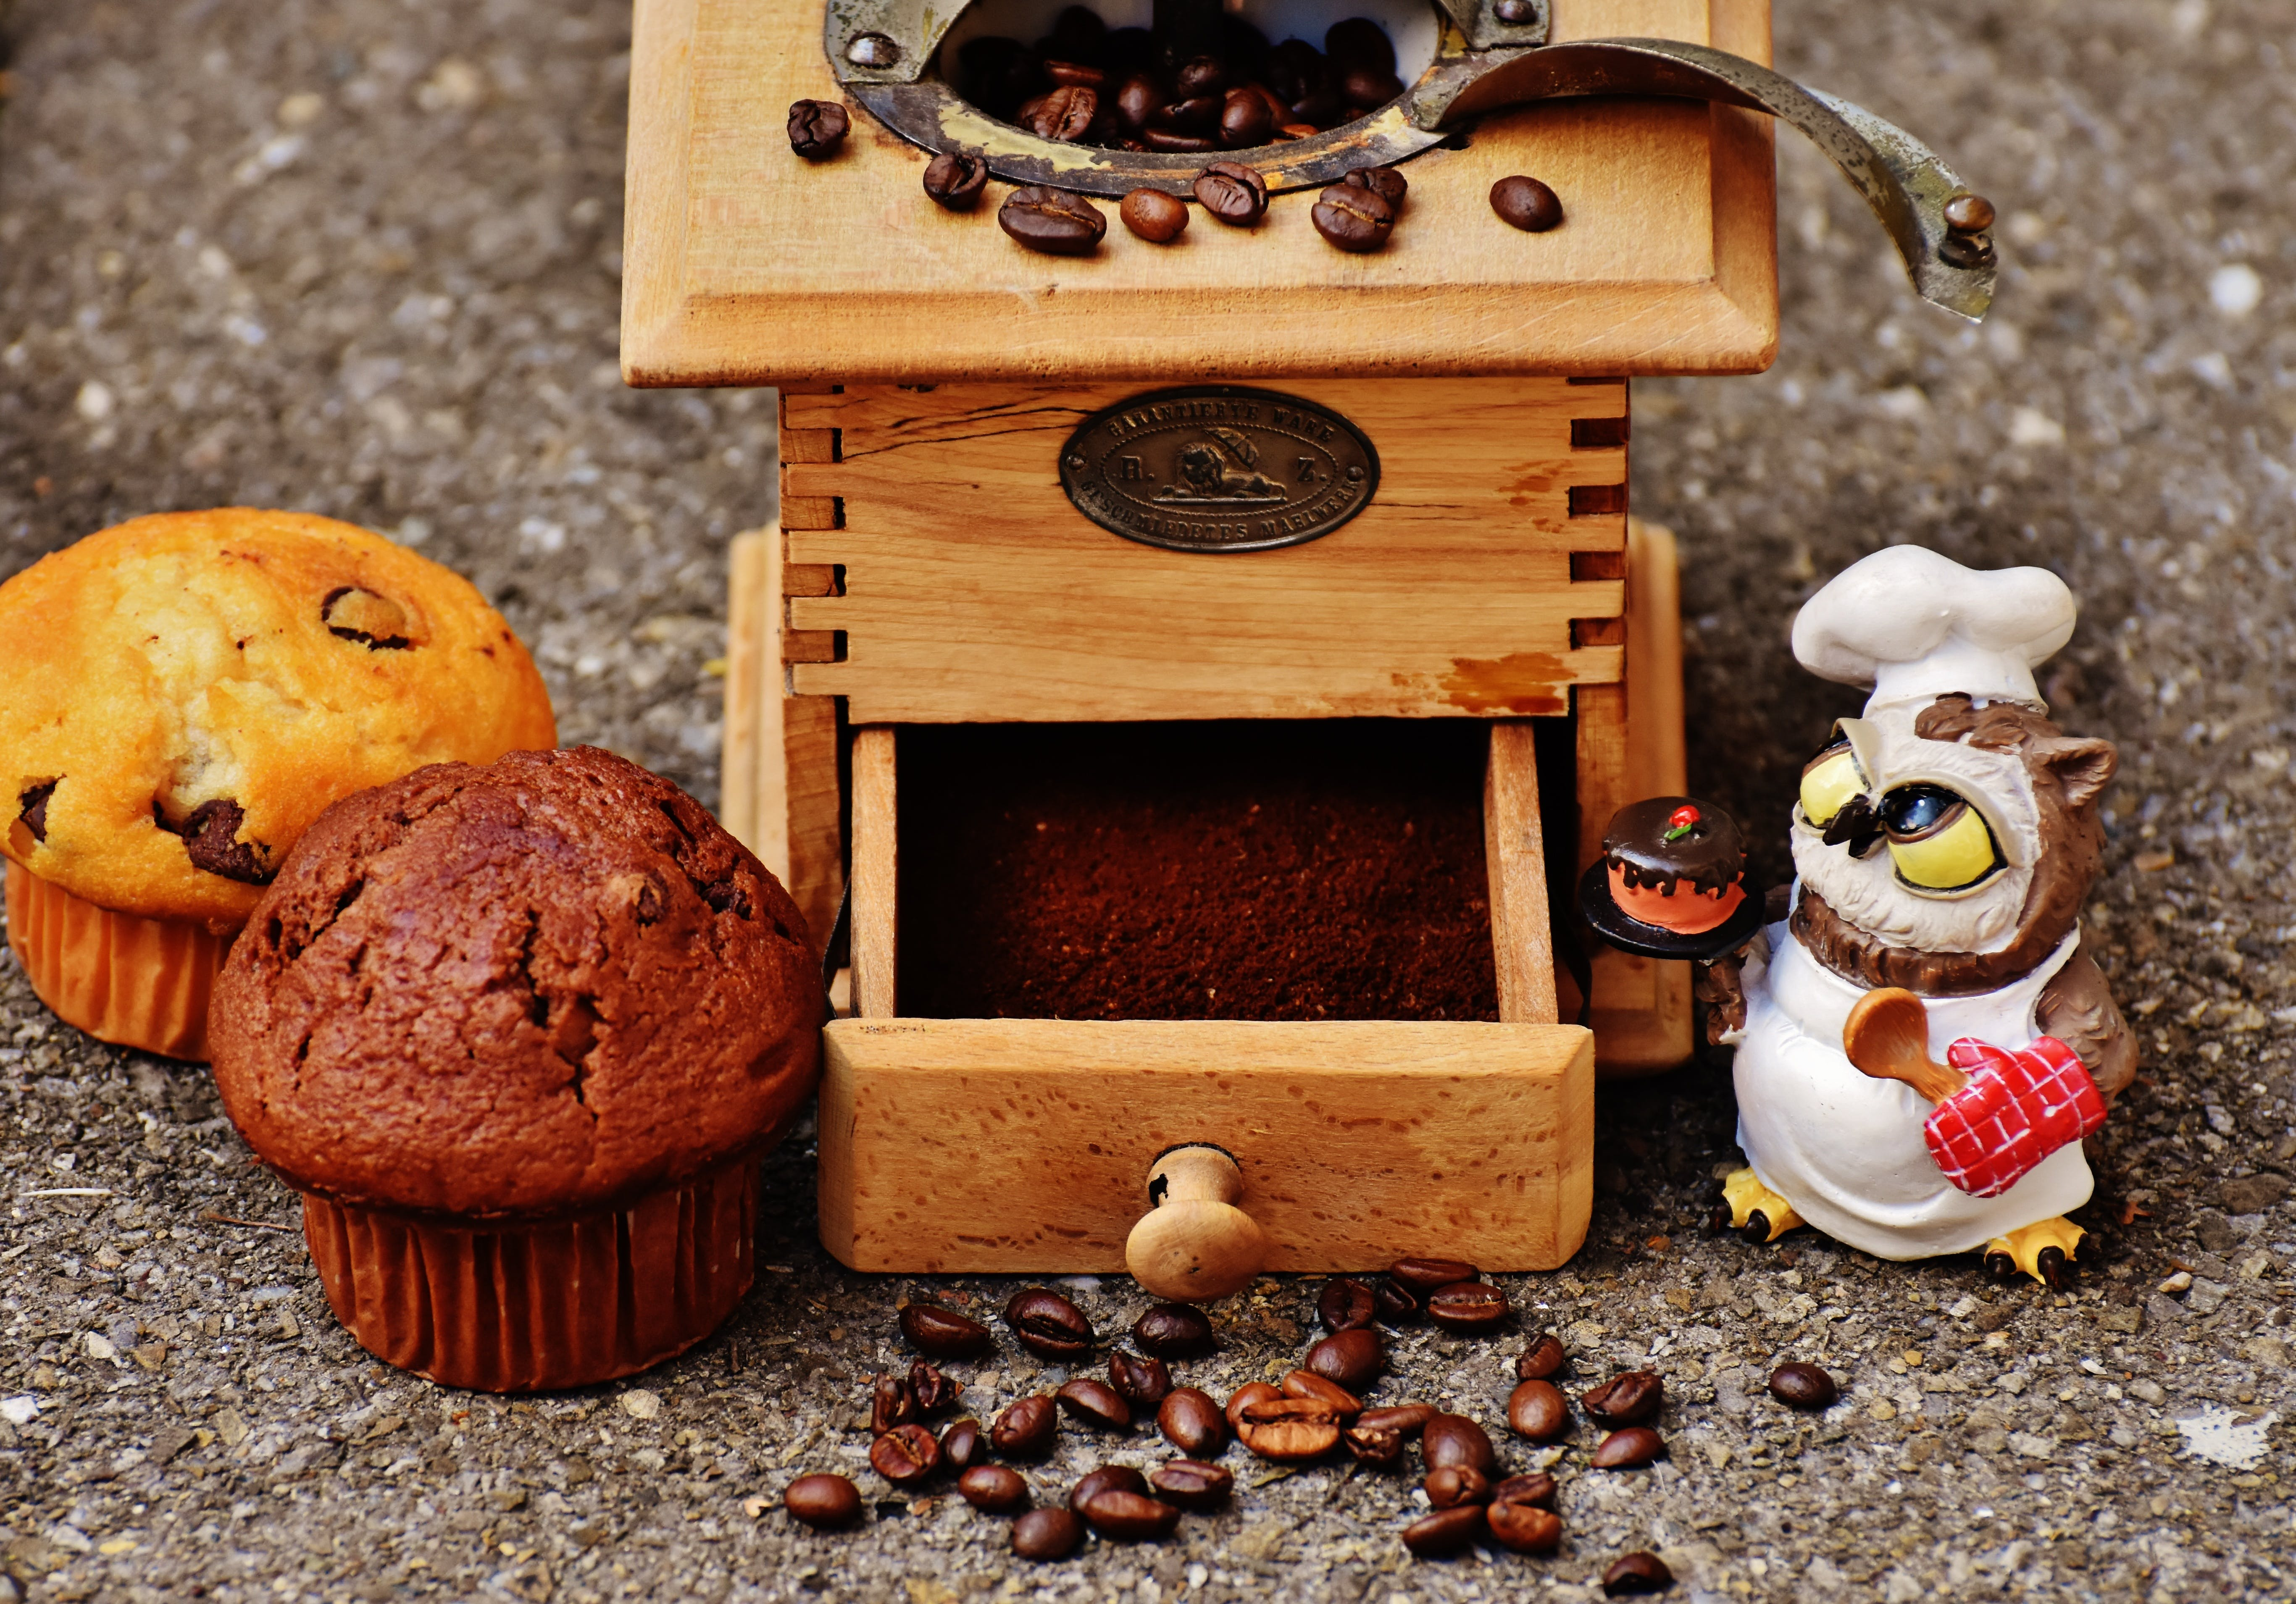 Brown Wooden Coffee Bean Grinder and Two Muffins